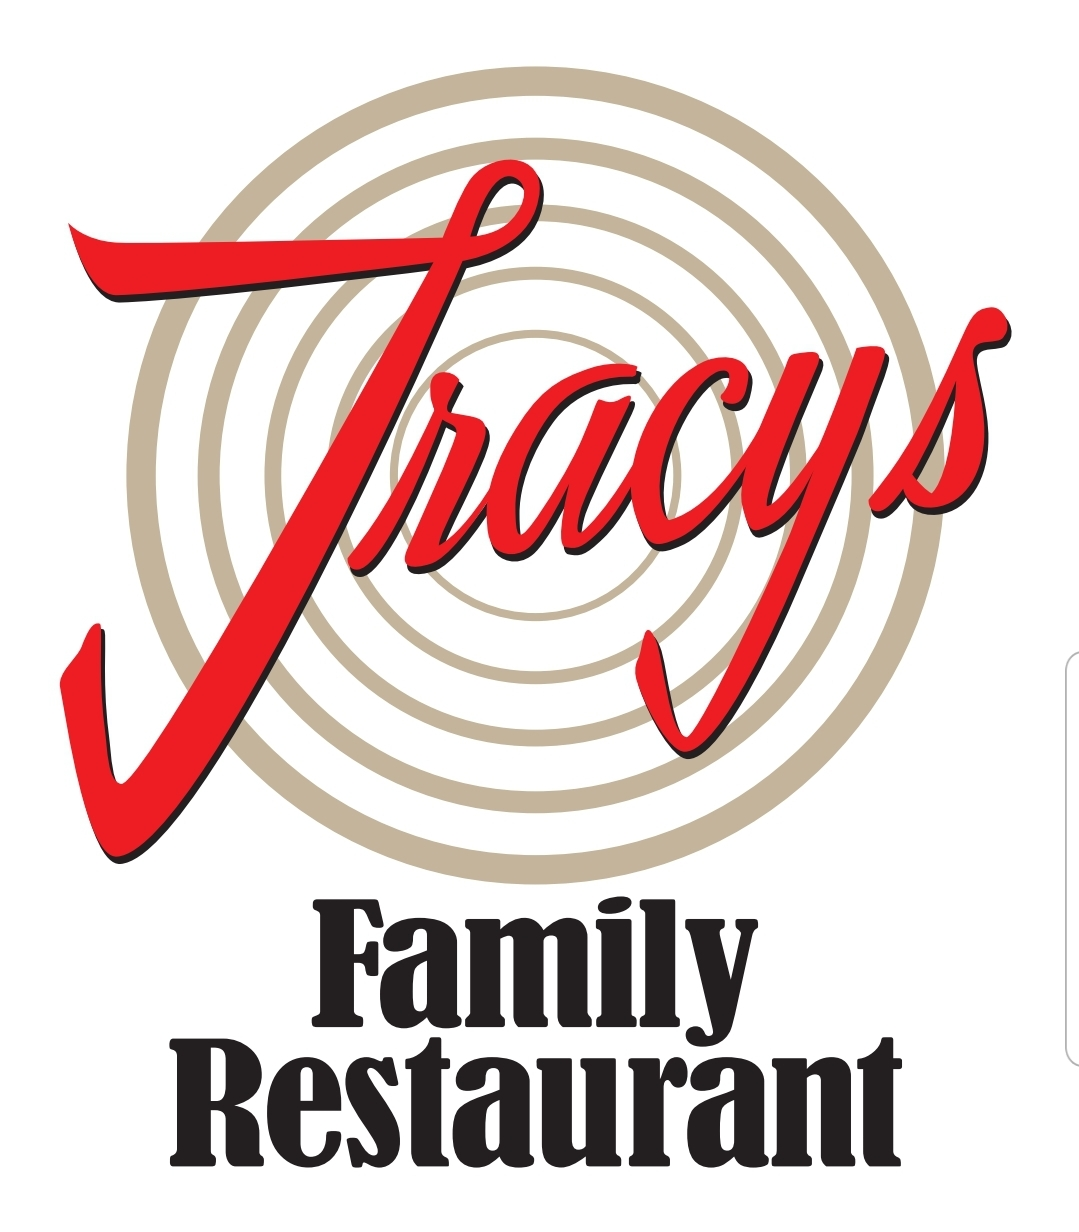 Tracy's Family Diner